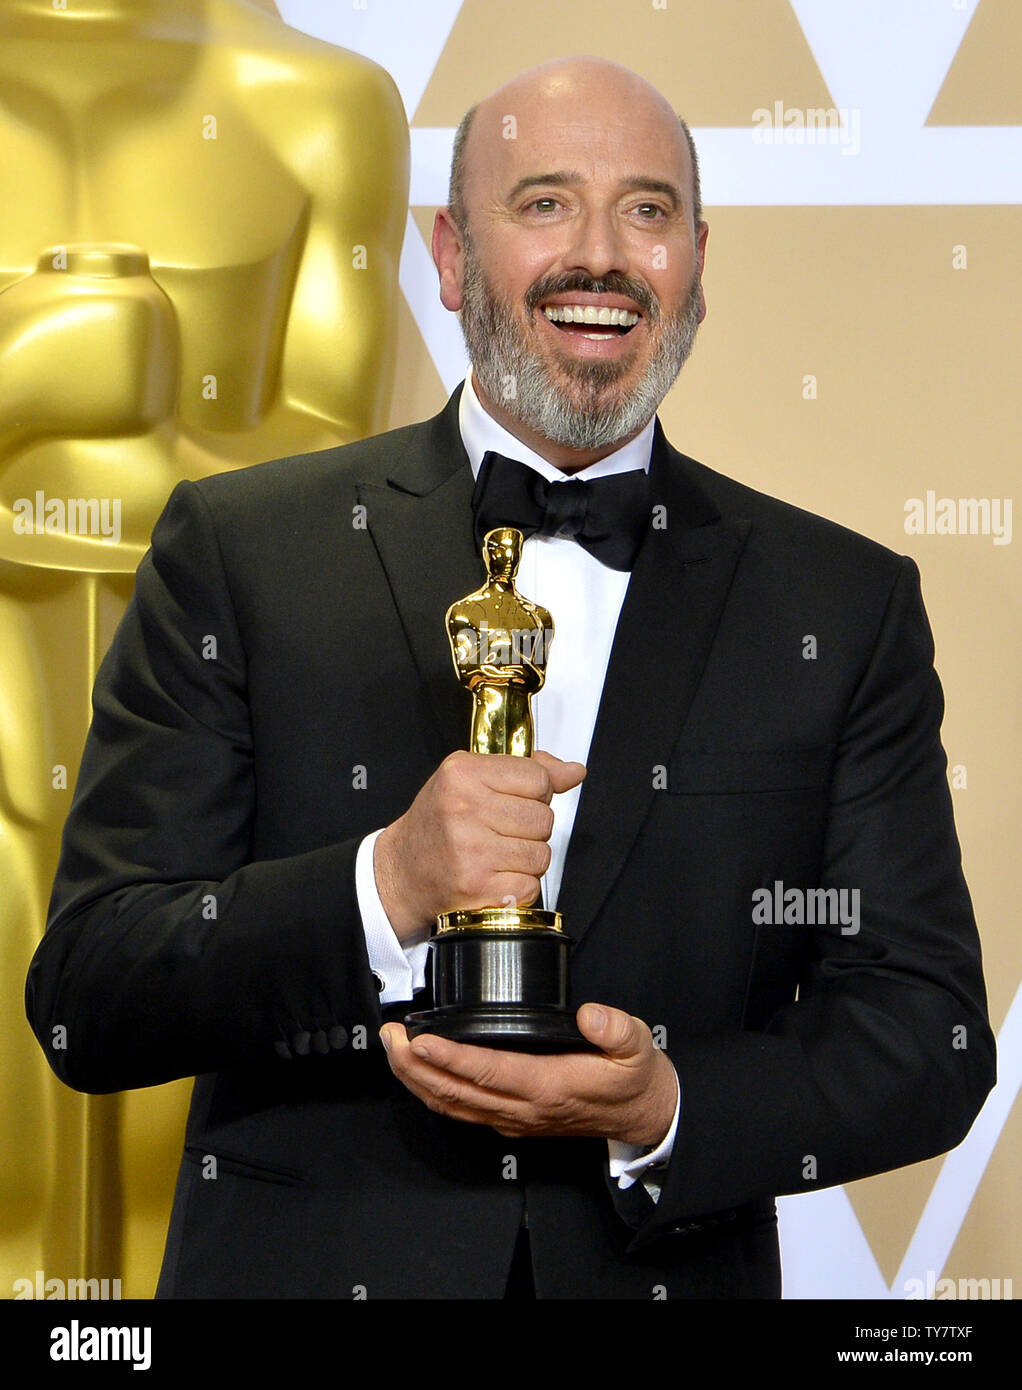 Mark Bridges Winner Of The Award For Best Costume Design For Phantom Thread Appears Backstage With His Oscar During The 90th Annual Academy Awards At Loews Hollywood Hotel In The Hollywood Section